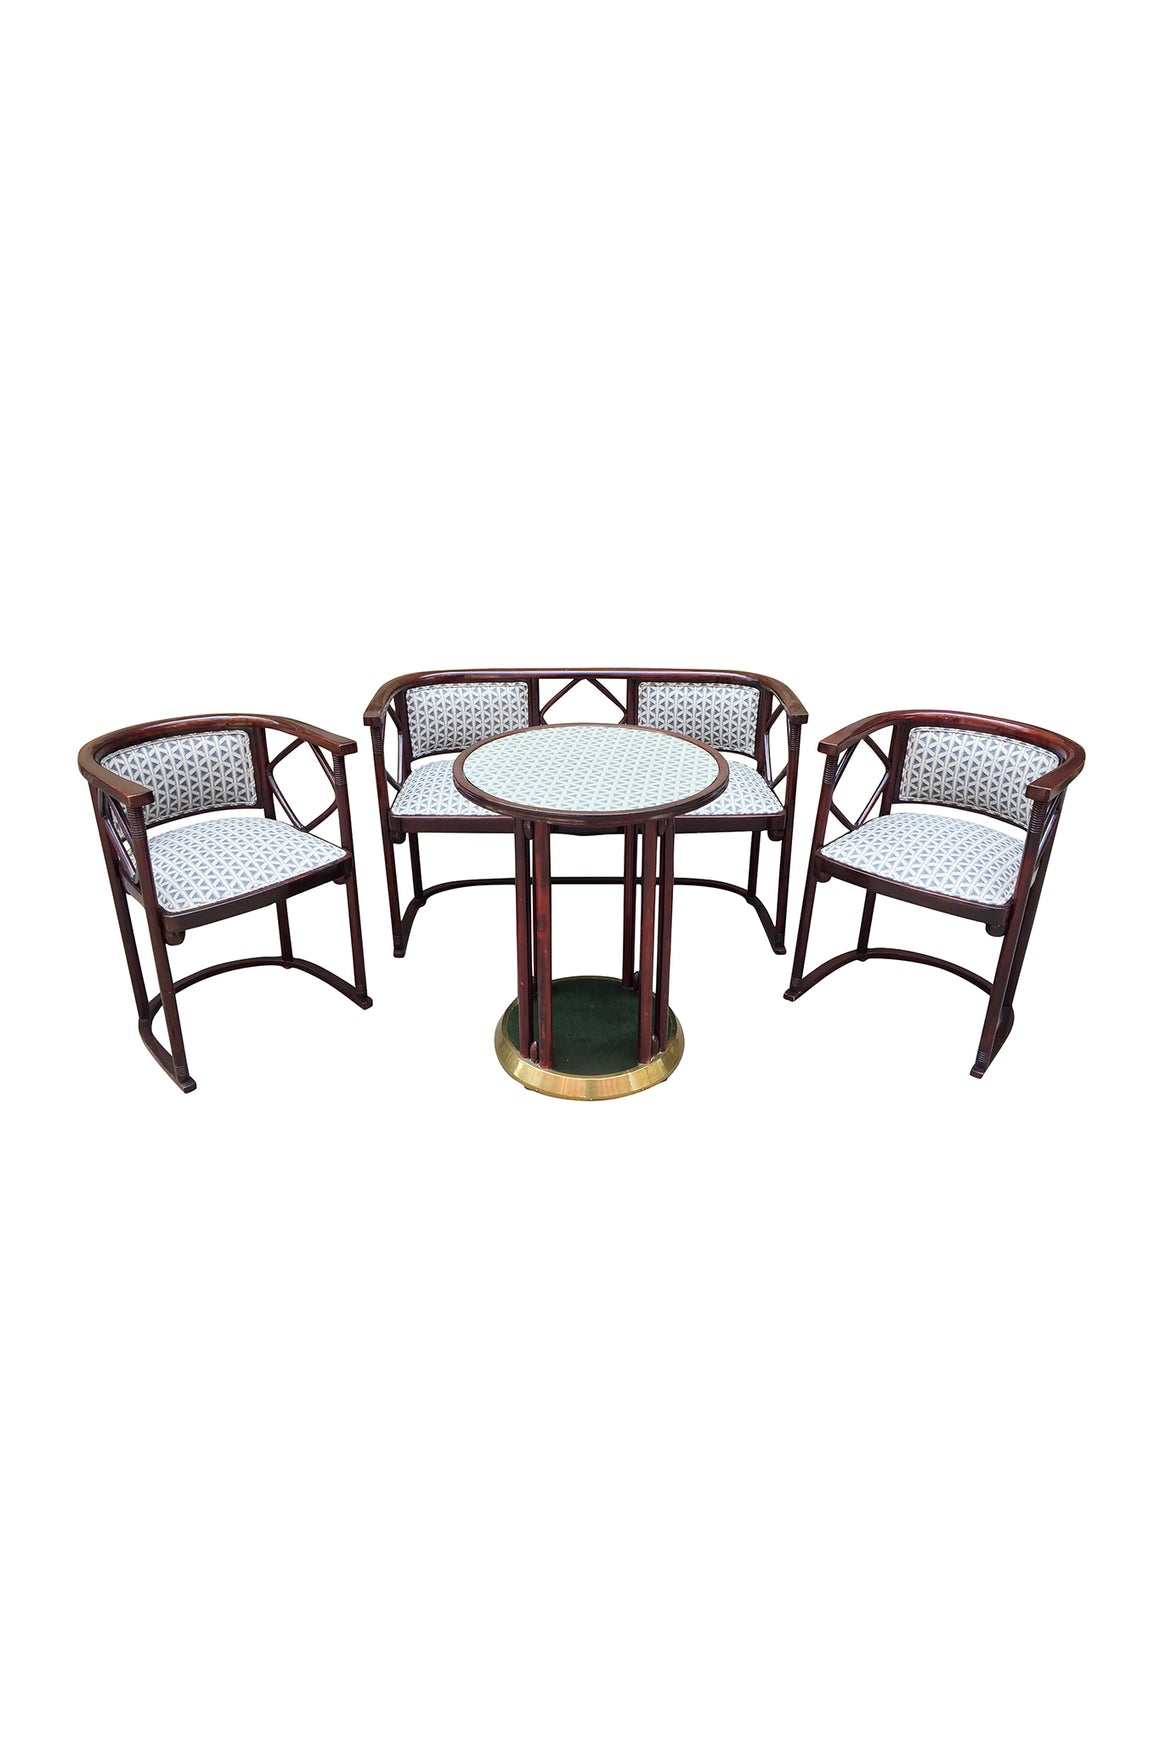 1930s Salon Suite by Josef Hoffmann for J & J Kohn and Mundus